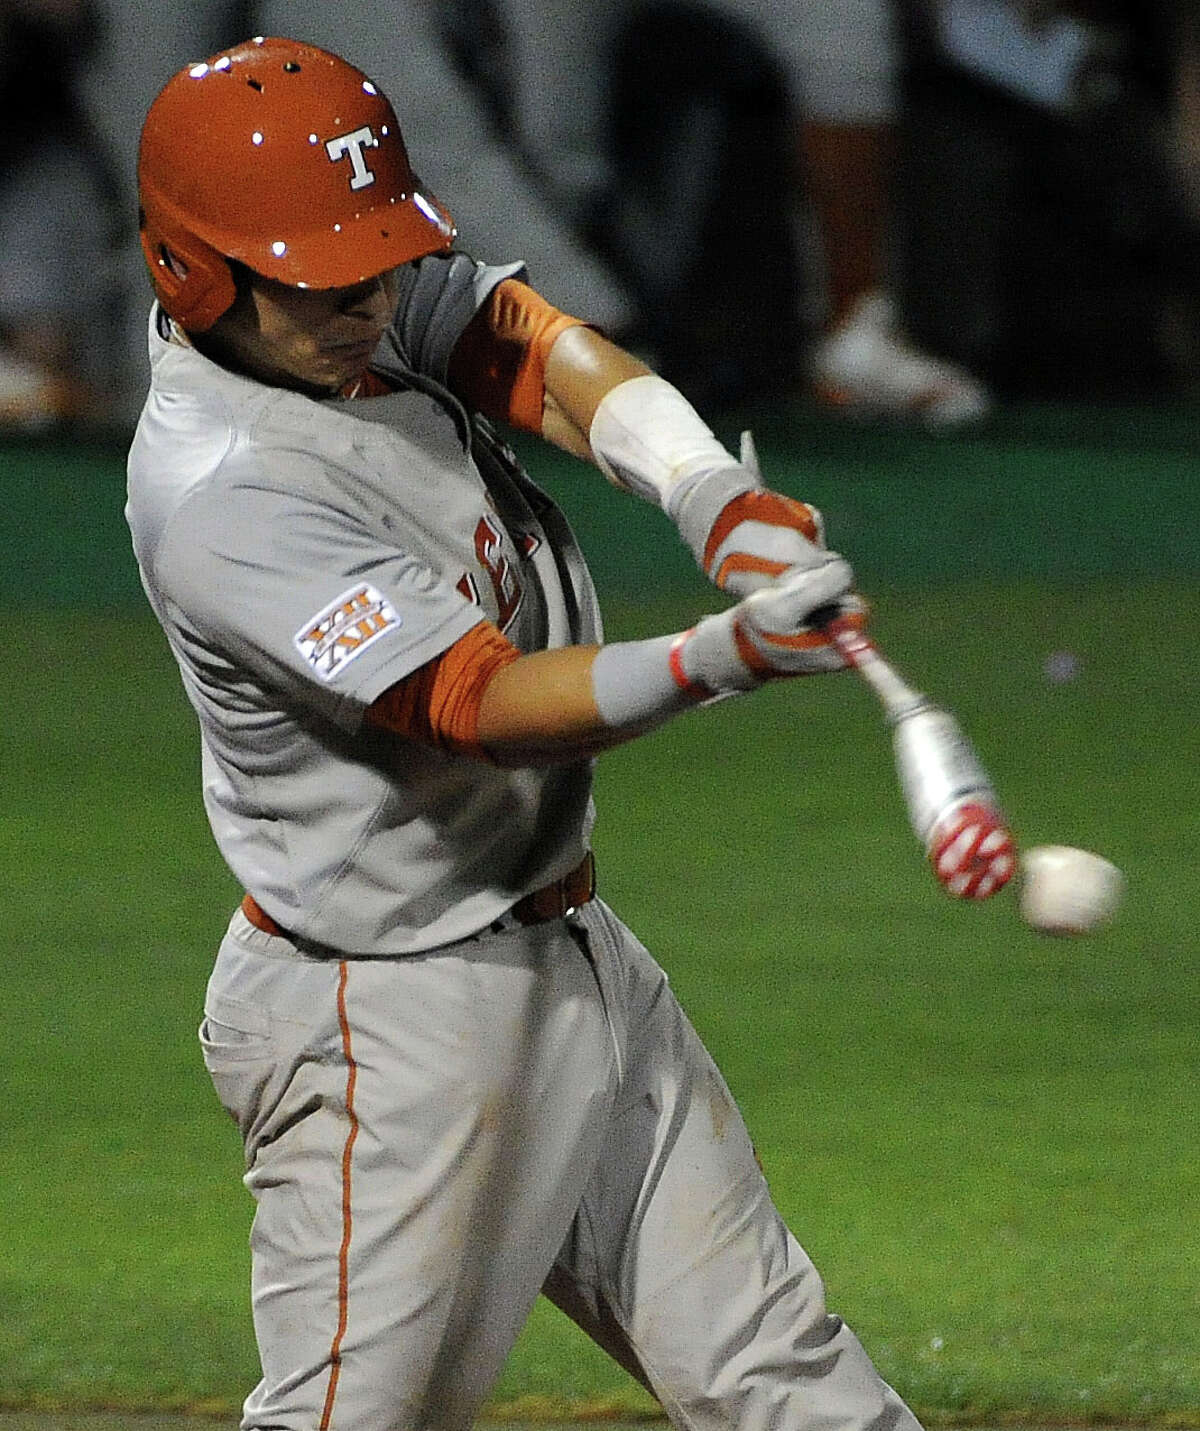 Texas' Madison Carter connects and reaches first on a fielder's choice during the second inning of a Houston NCAA baseball regional game against Rice, Saturday, May 31, 2014, at Reckling Park in Houston.